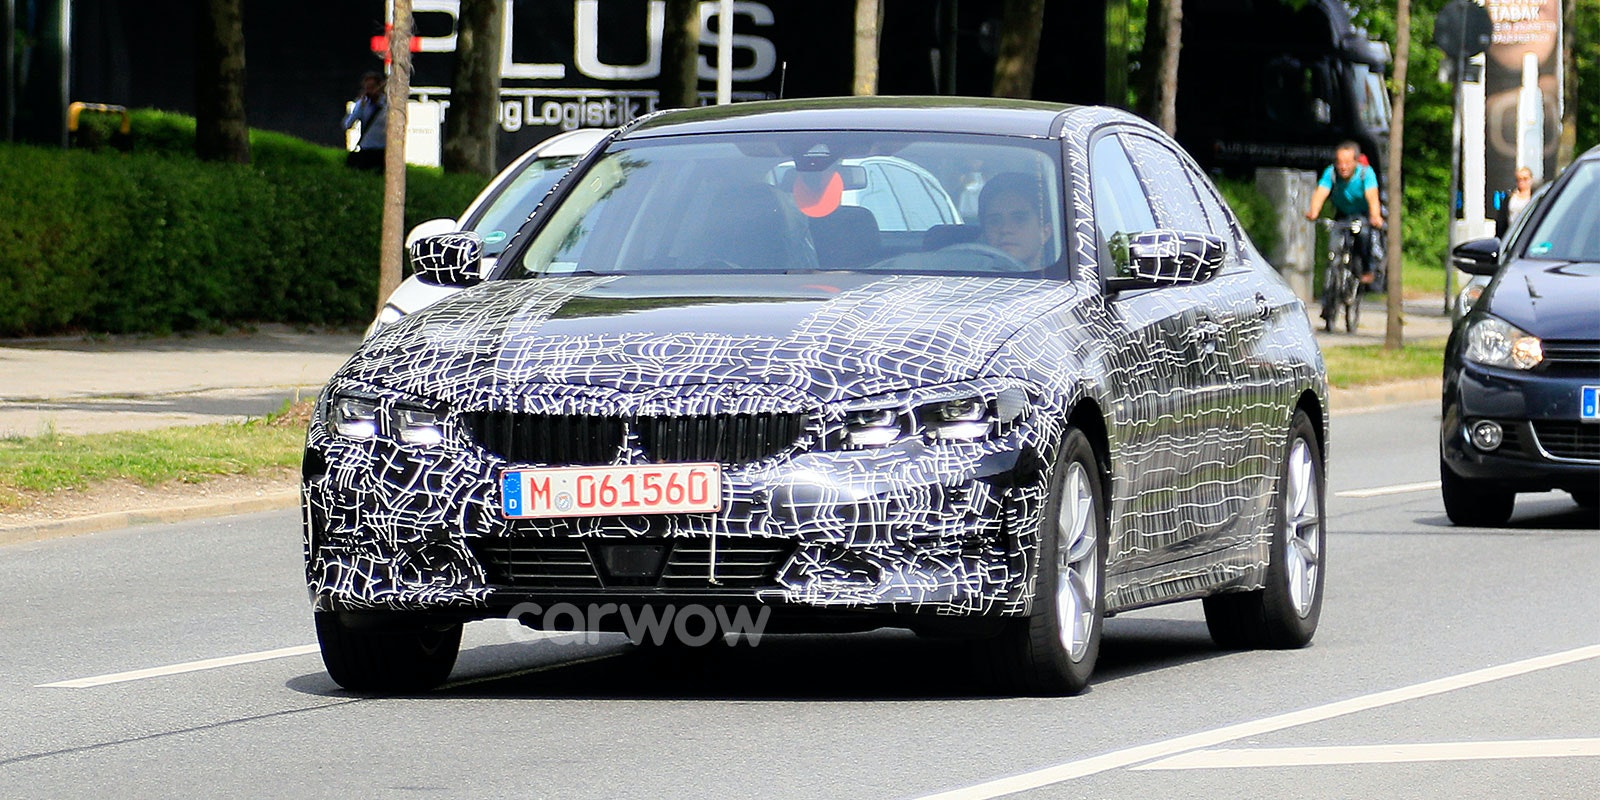 Bmw 3 series prototype spyshots driving front lead 1.jpg?ixlib=rb 1.1